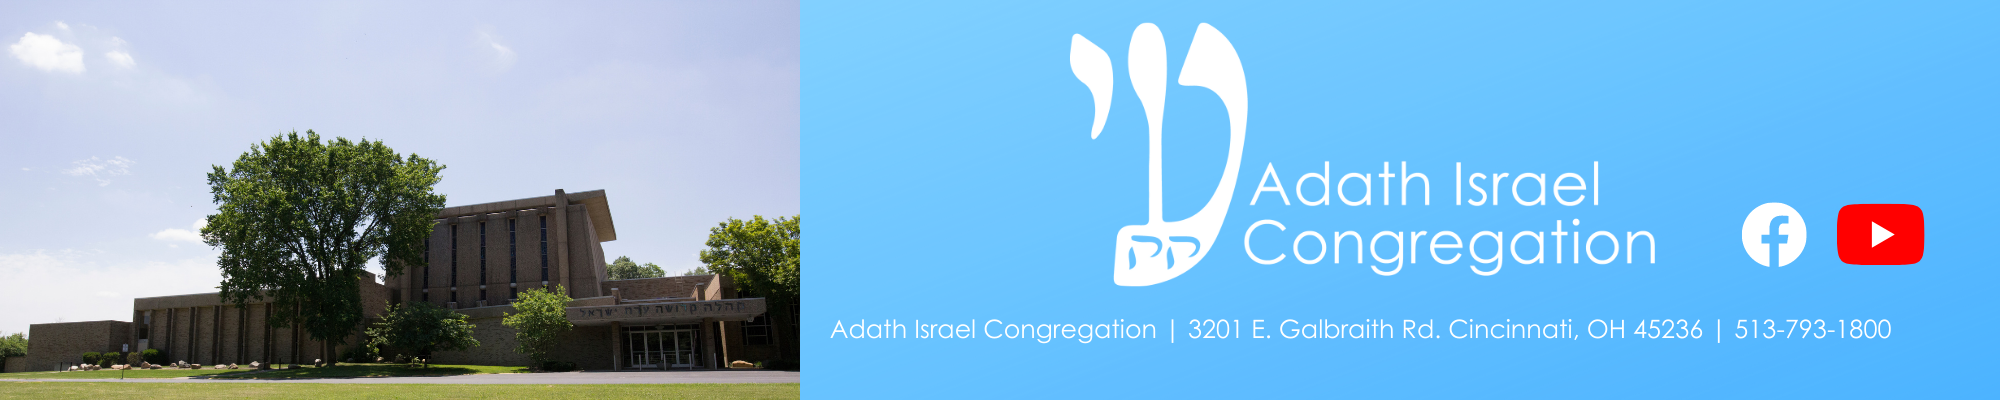 """<span class=""""slider_title"""">                                     Welcome to Adath Israel Congregation                                </span>                                                                                                                                                                                       <span class=""""slider_description"""">Adath Israel is a Kehilah Kedoshah, a Conservative Jewish community, that supports congregants during significant life events, and in their journeys to become more involved, knowledgeable, and spiritually fulfilled Jews.</span>"""